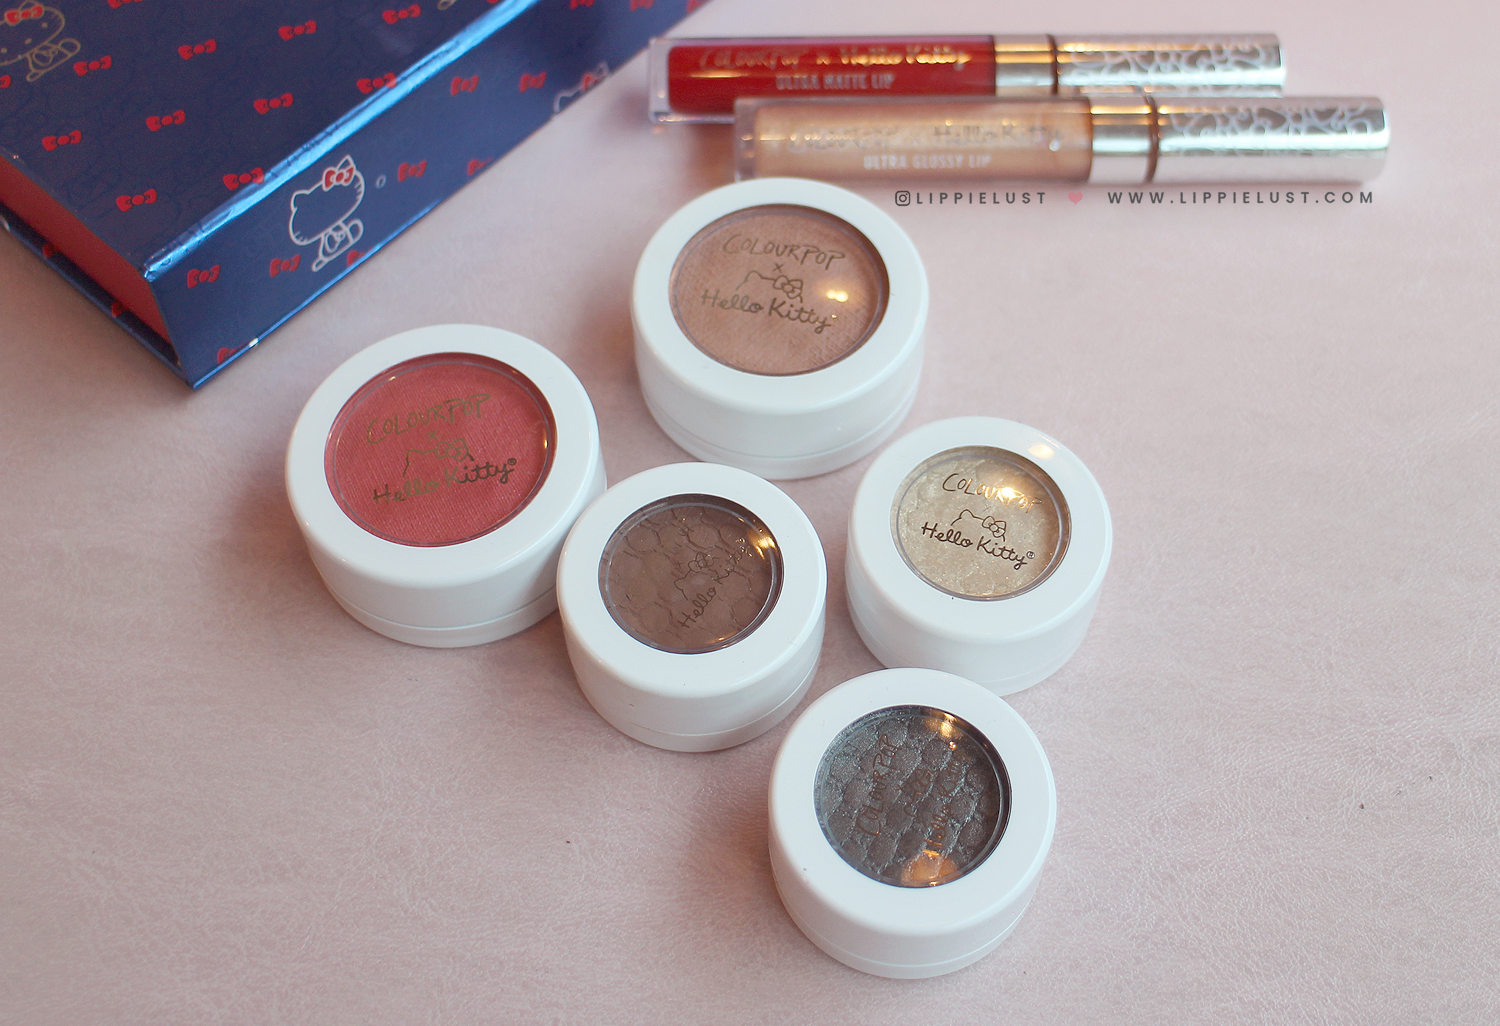 colourpop-hello-kitty-lippielust-6